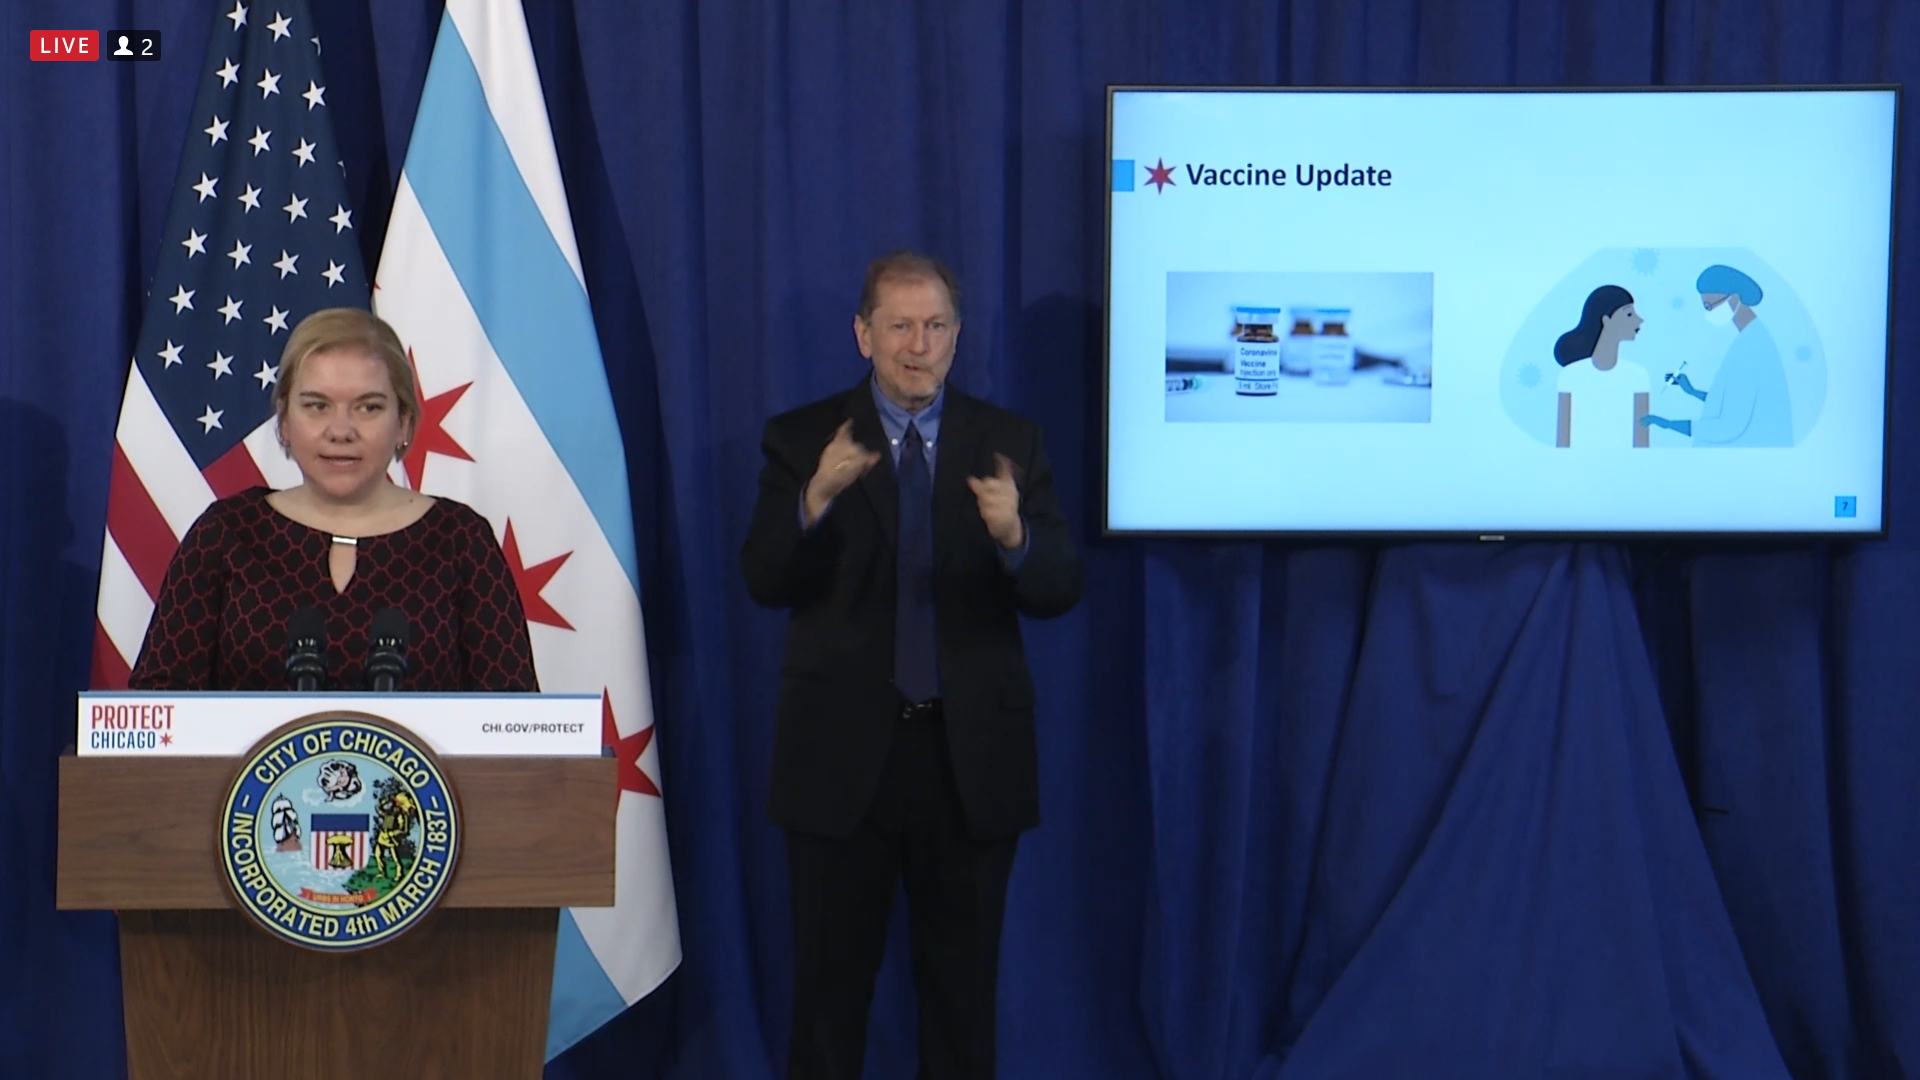 Chicago could get COVID-19 vaccine as early as mid-December